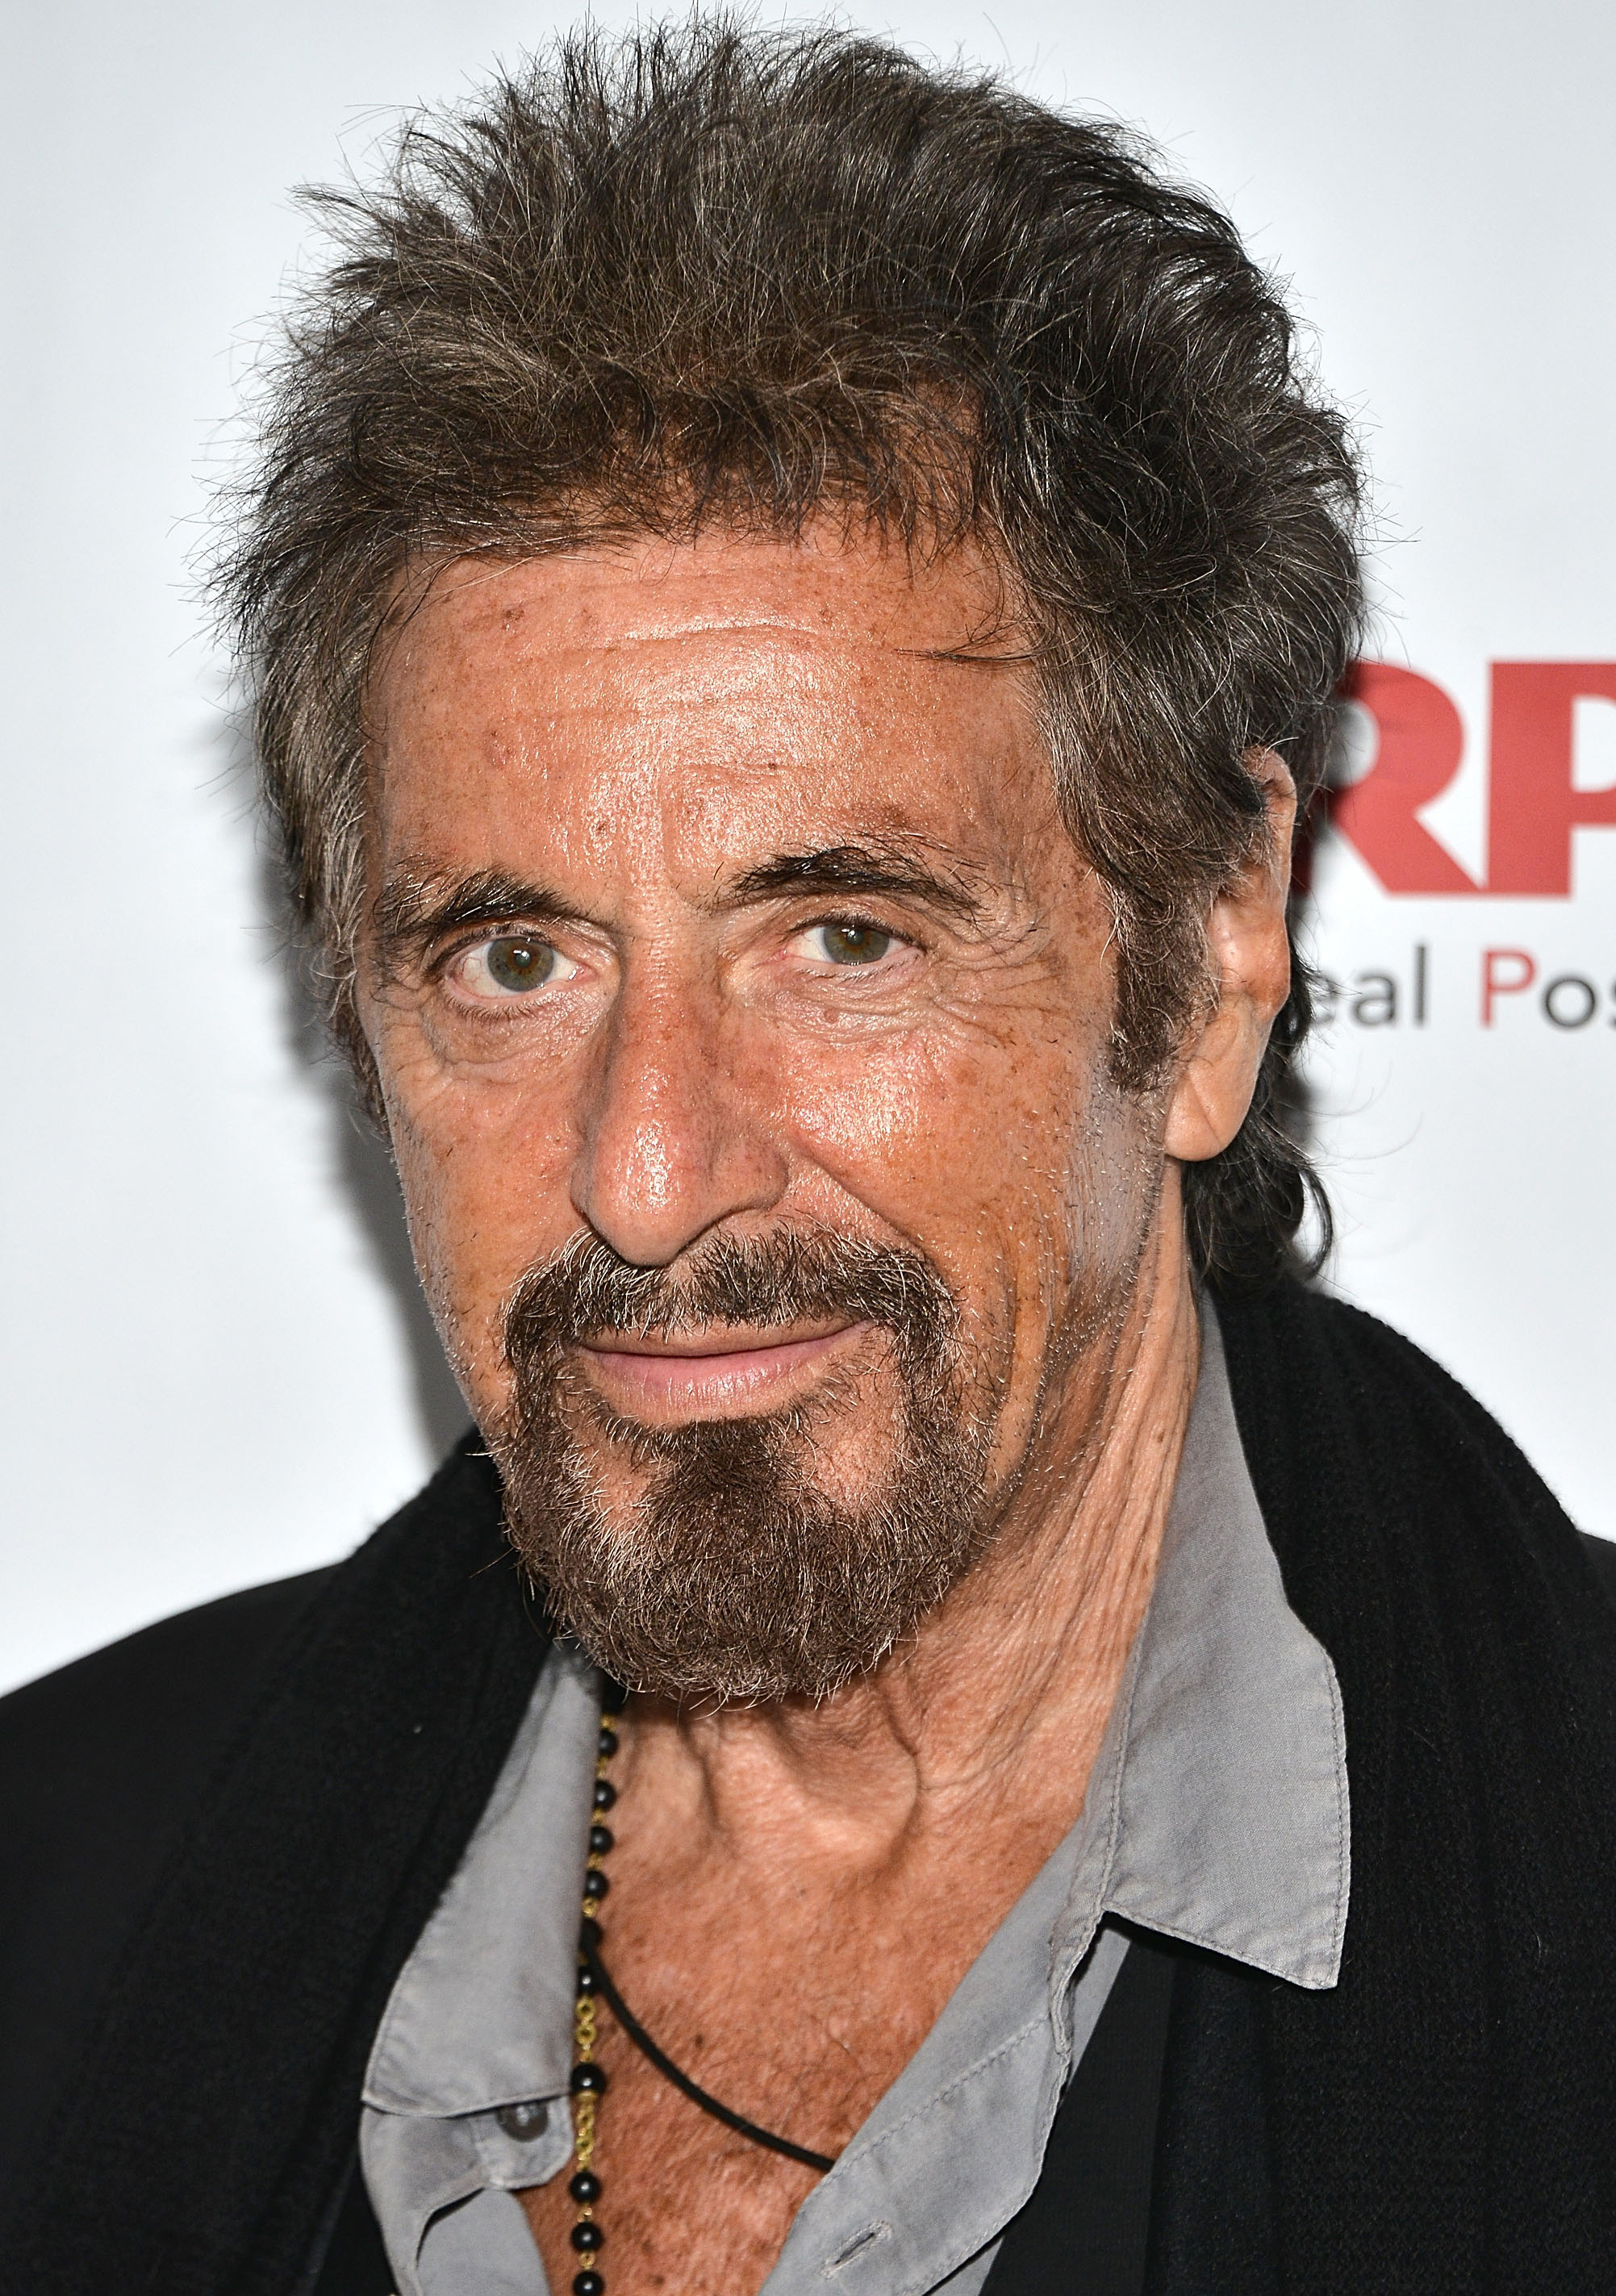 Al Pacino on His Upcom...